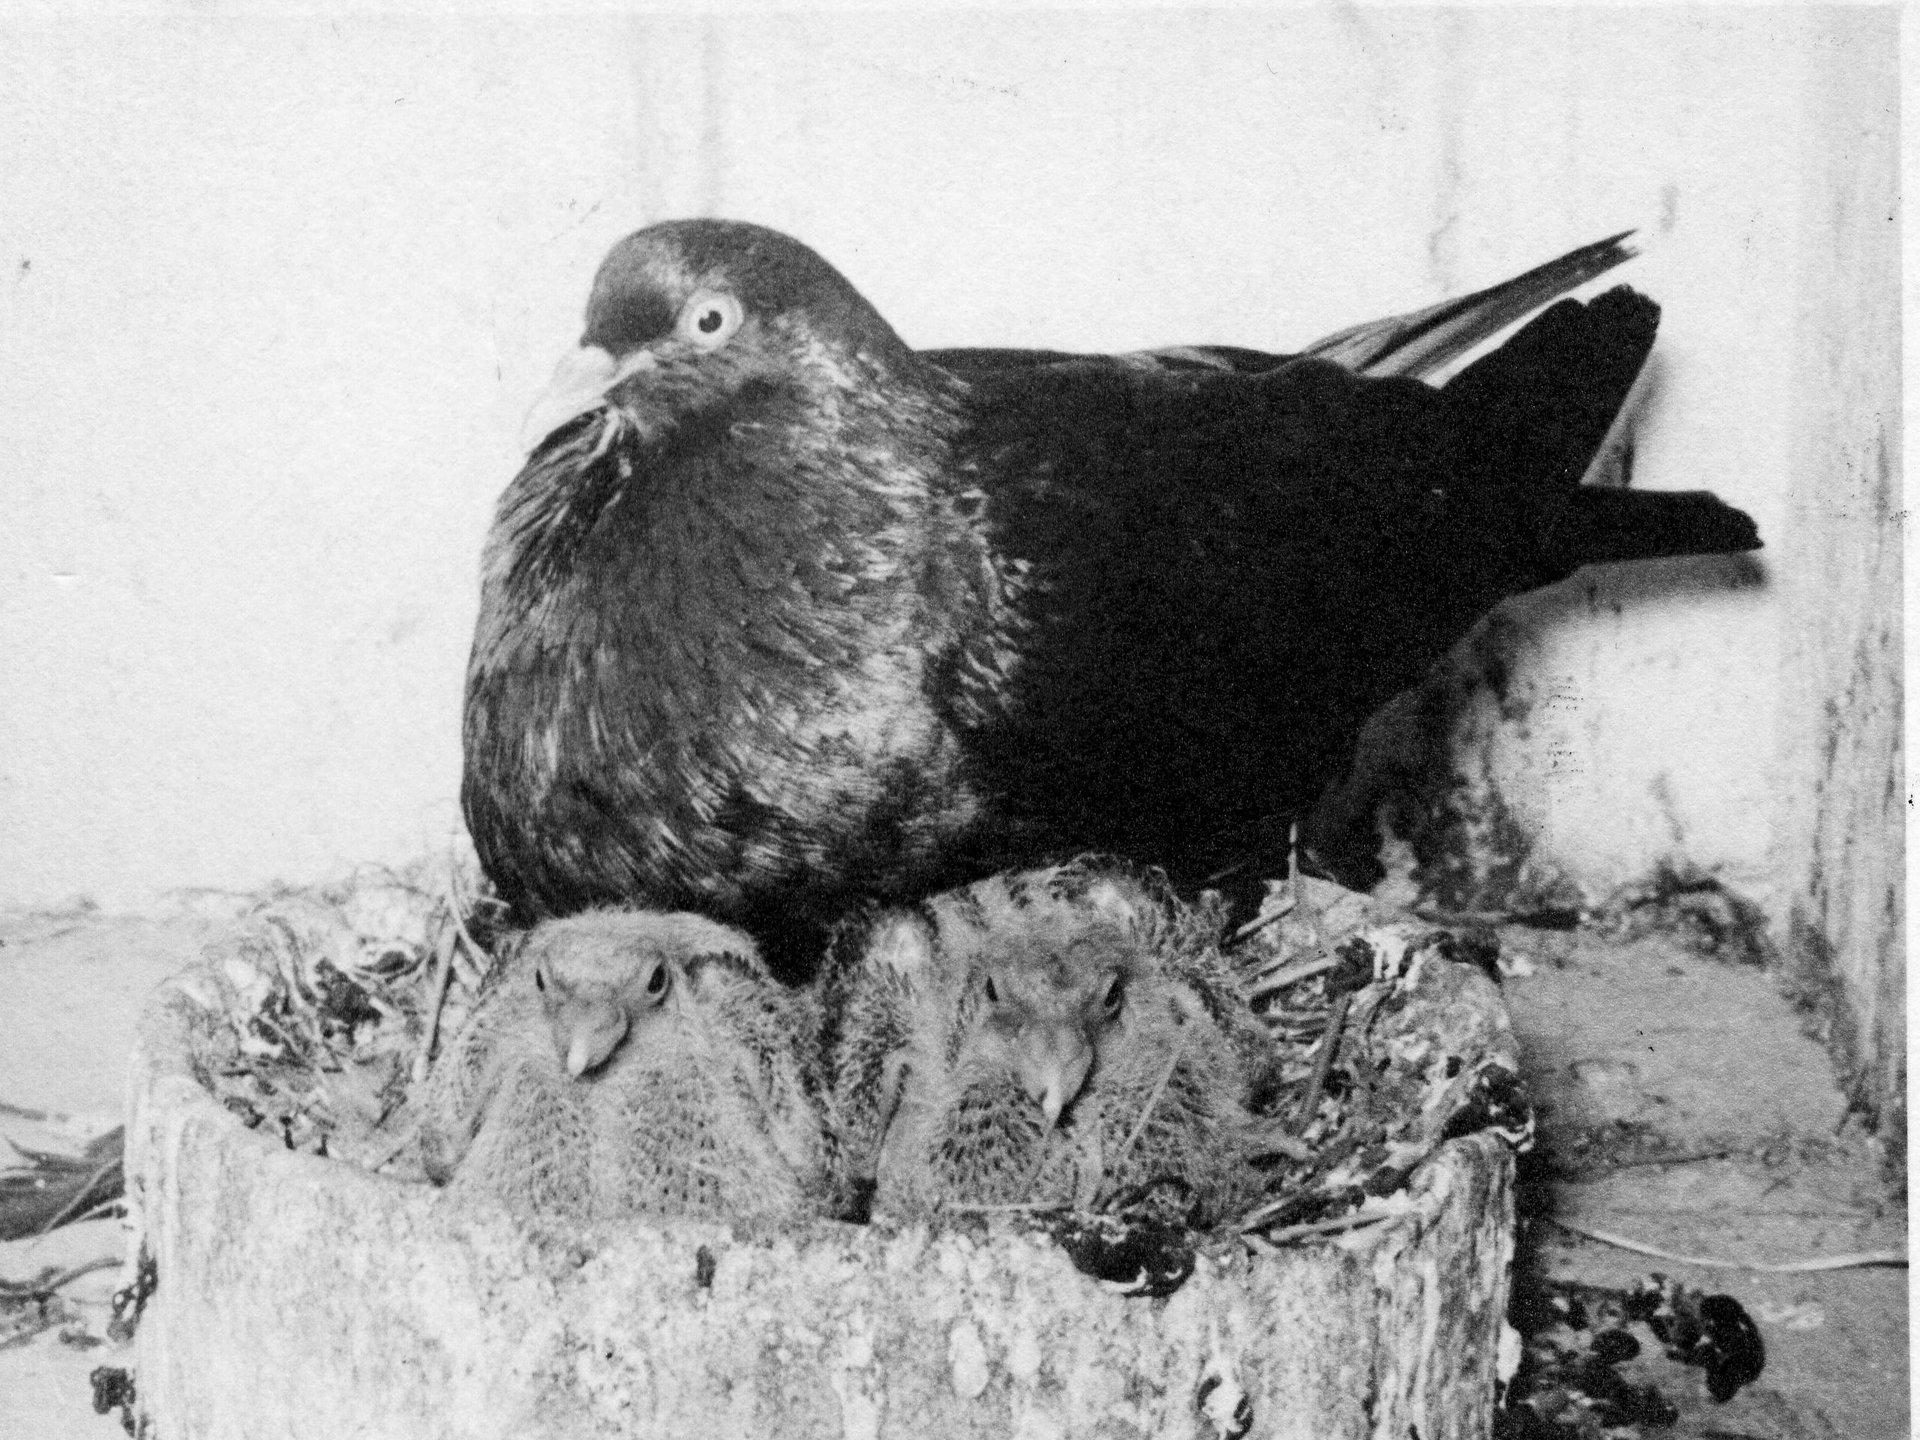 Petra Feriancová, Series Creator – From the Archive of O. Ferianc, New Breeds 1949-1952, 2008, (79/112)